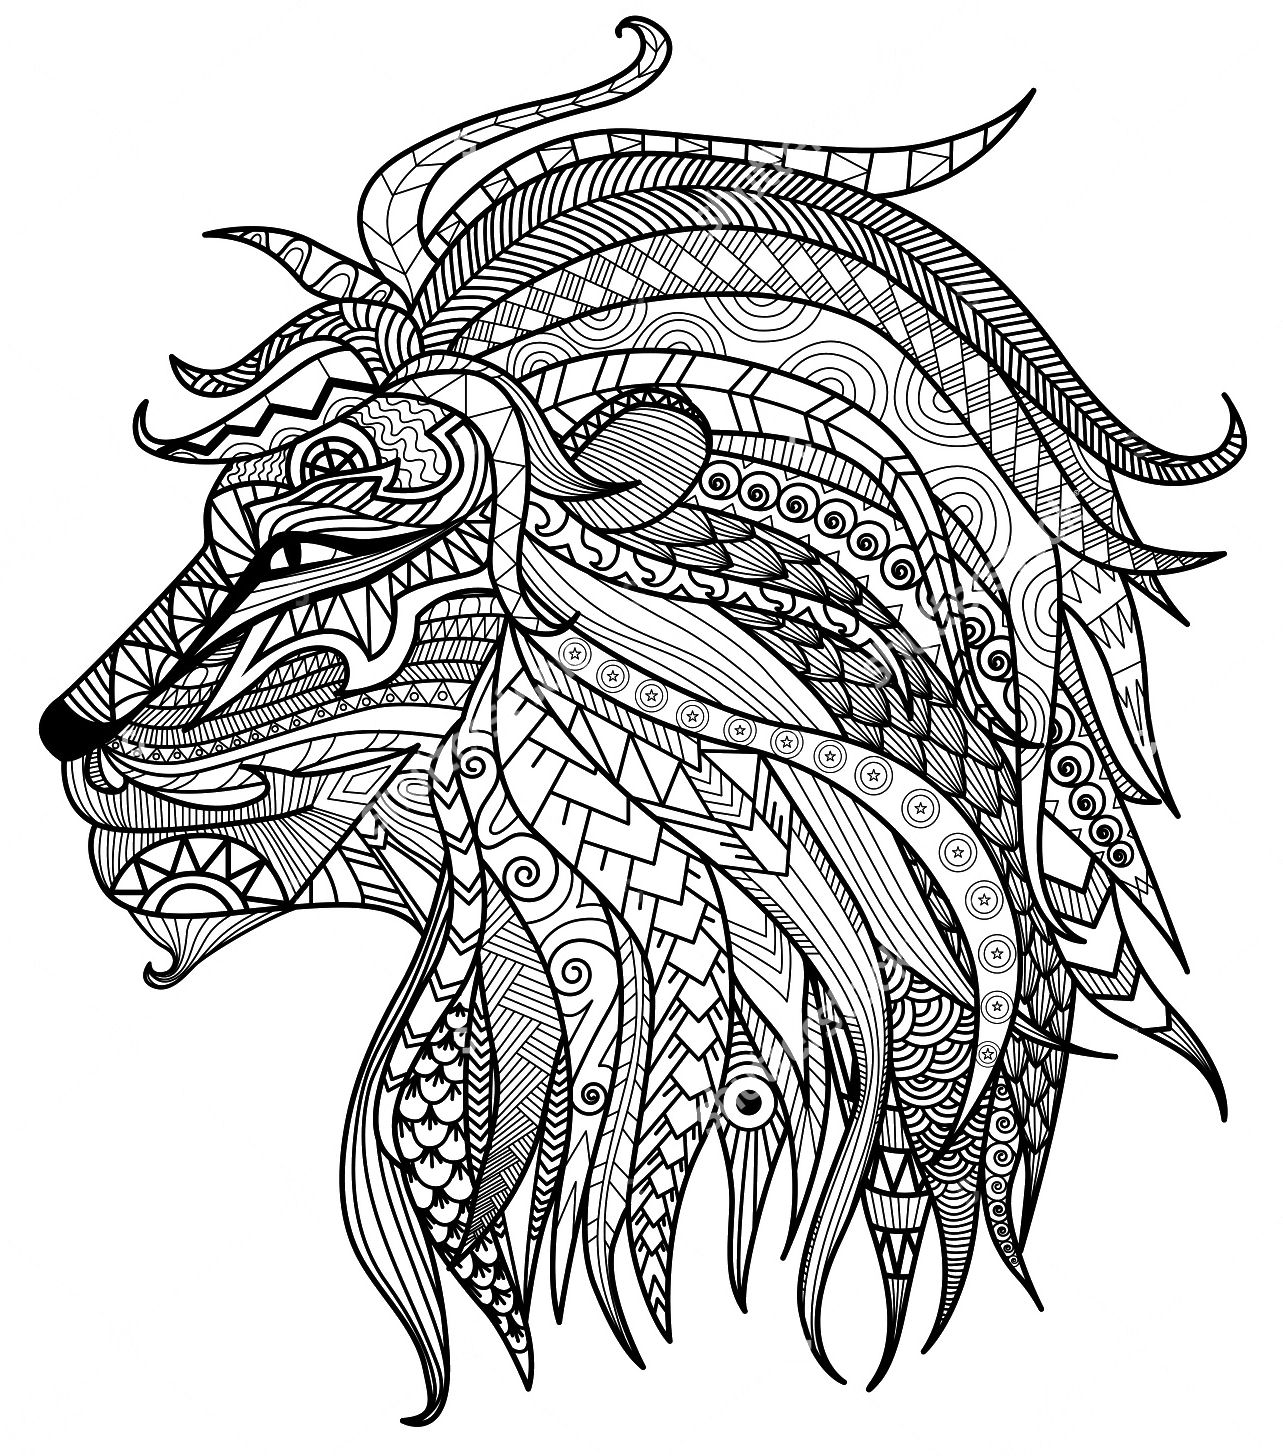 lion coloring sheets lion free to color for children lion kids coloring pages coloring lion sheets